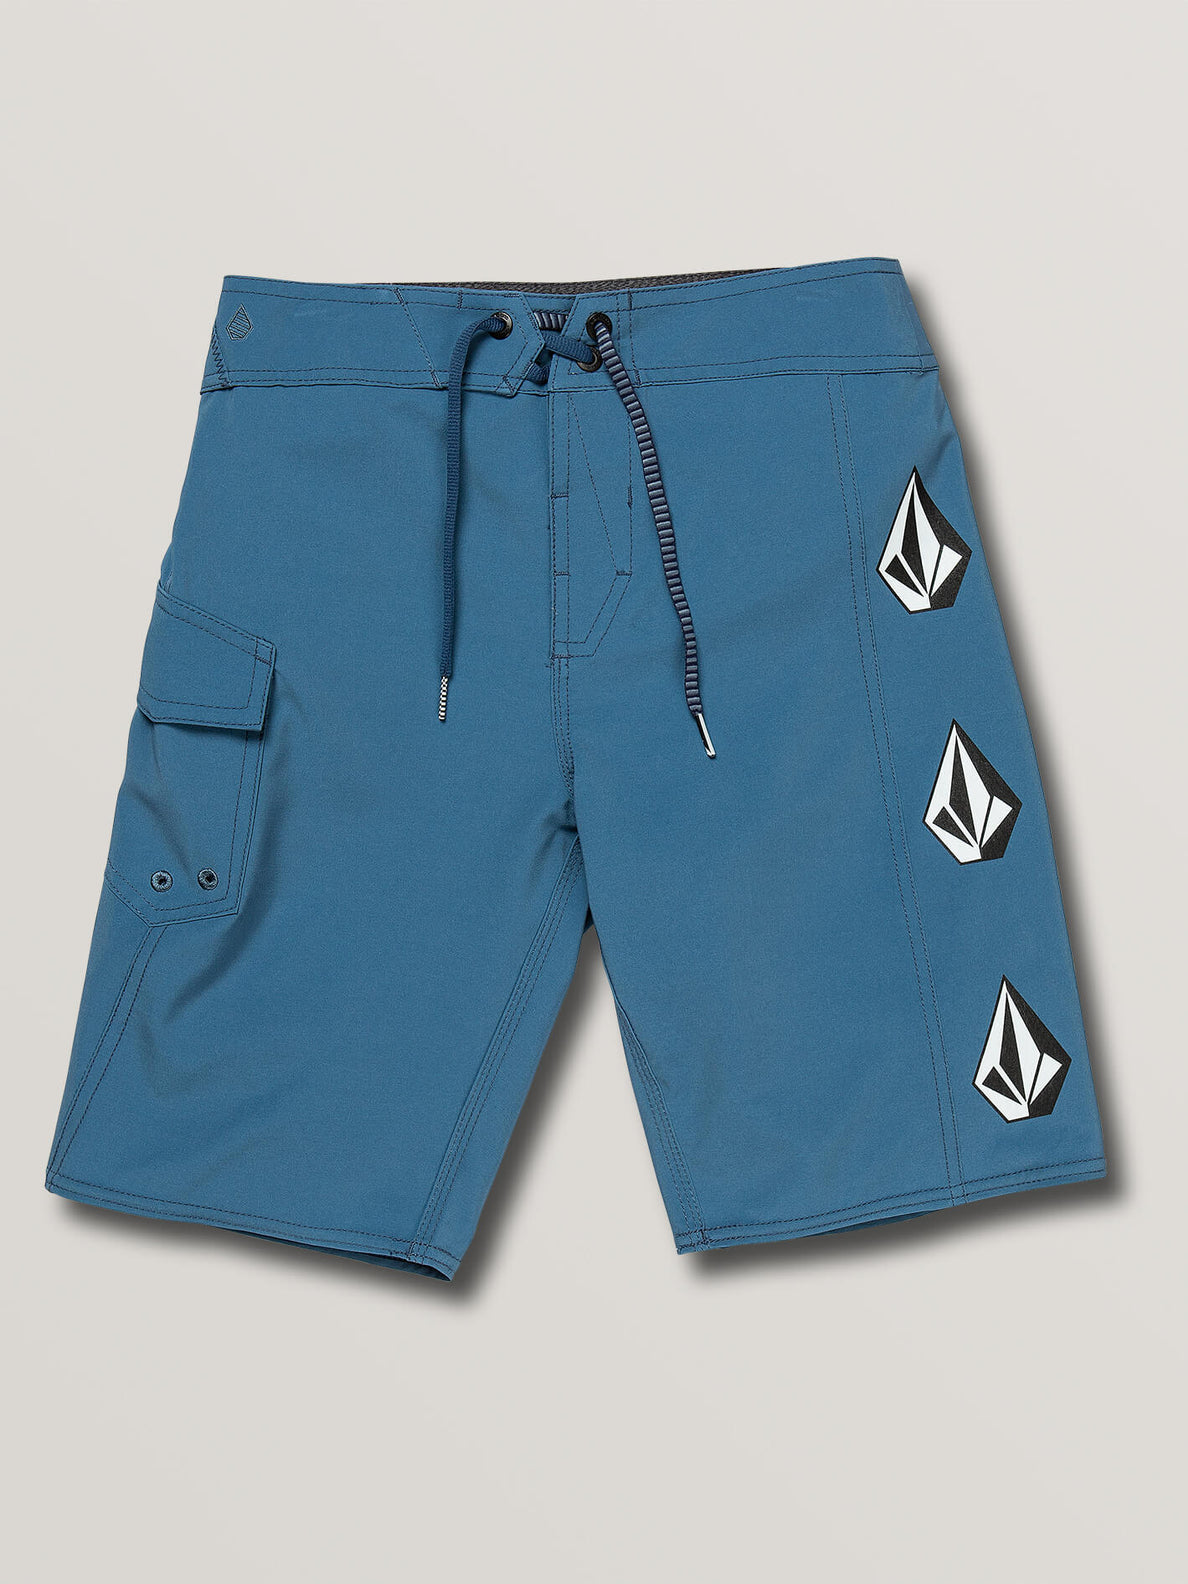 Big Boys Deadly Stones Mod Boardshorts In Airforce Blue, Front View